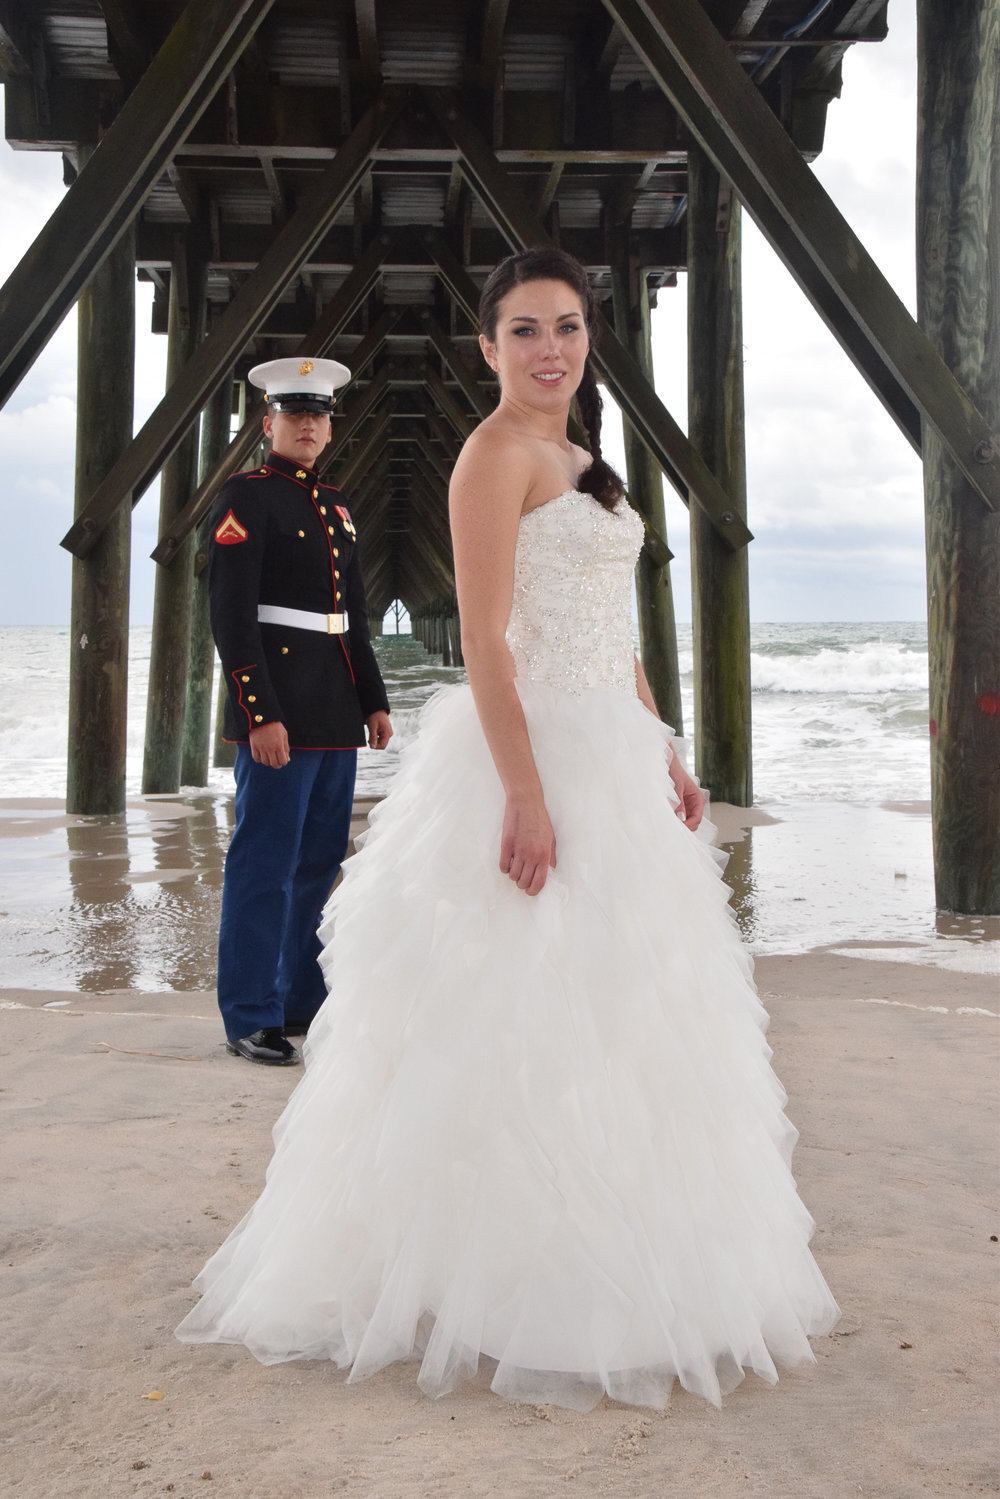 Bride and Groom under pier.